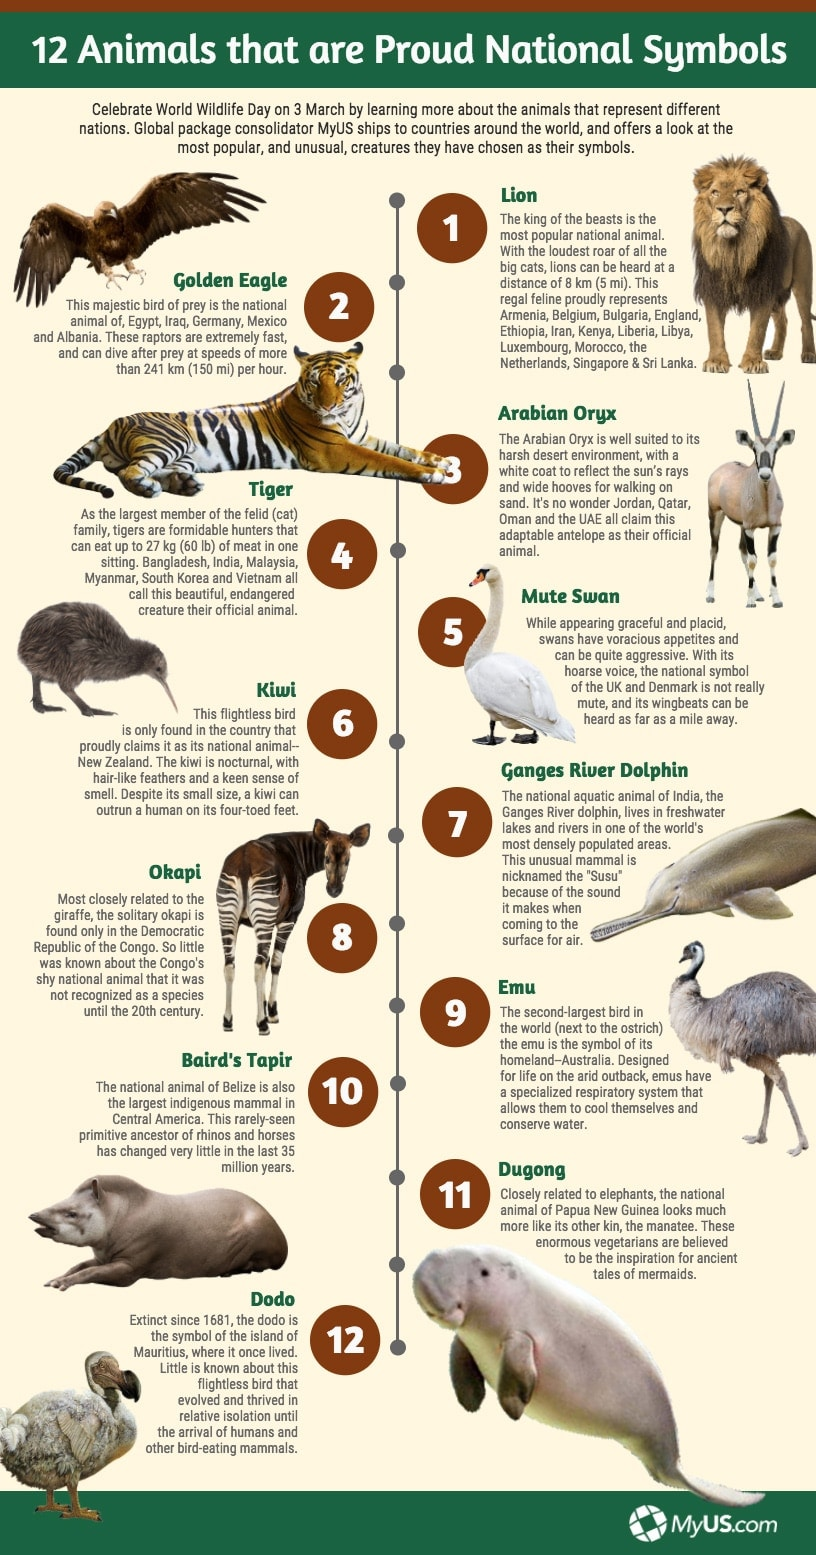 Infographic showing 12 animals that are national symbols in the world